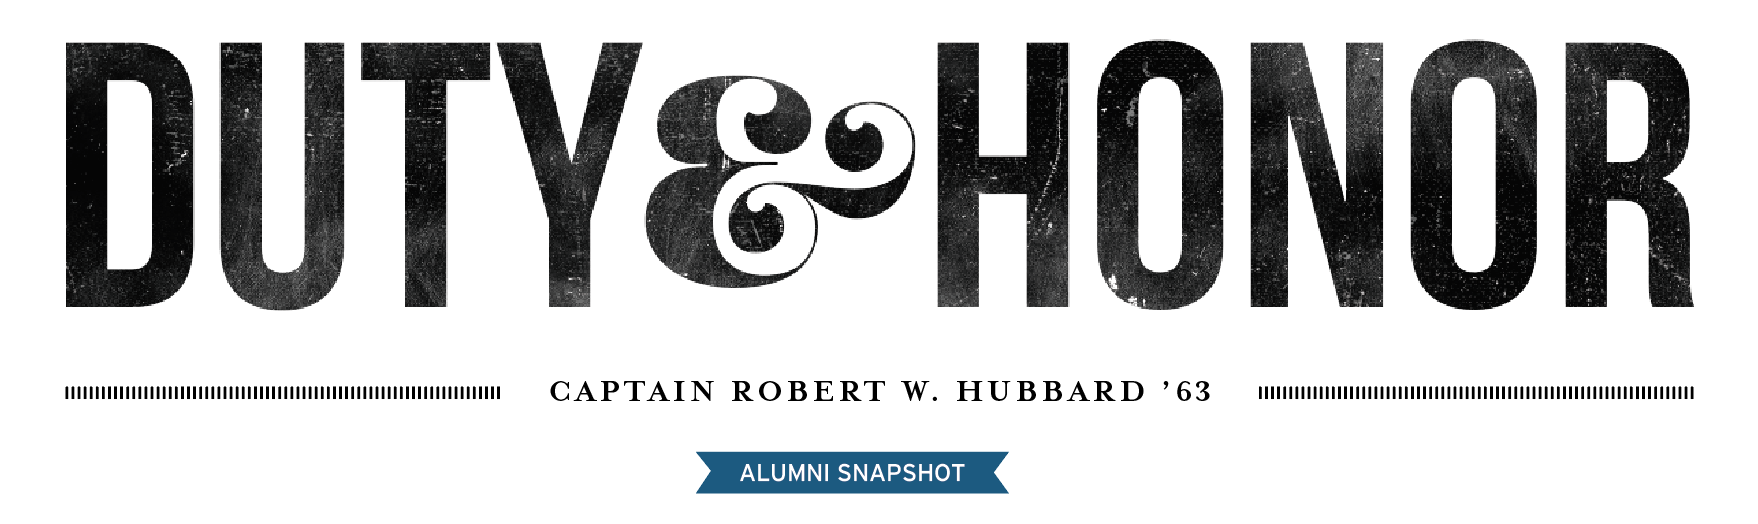 Duty and Honor Captain Robert W. Hubbard '63 Alumni Snapshot